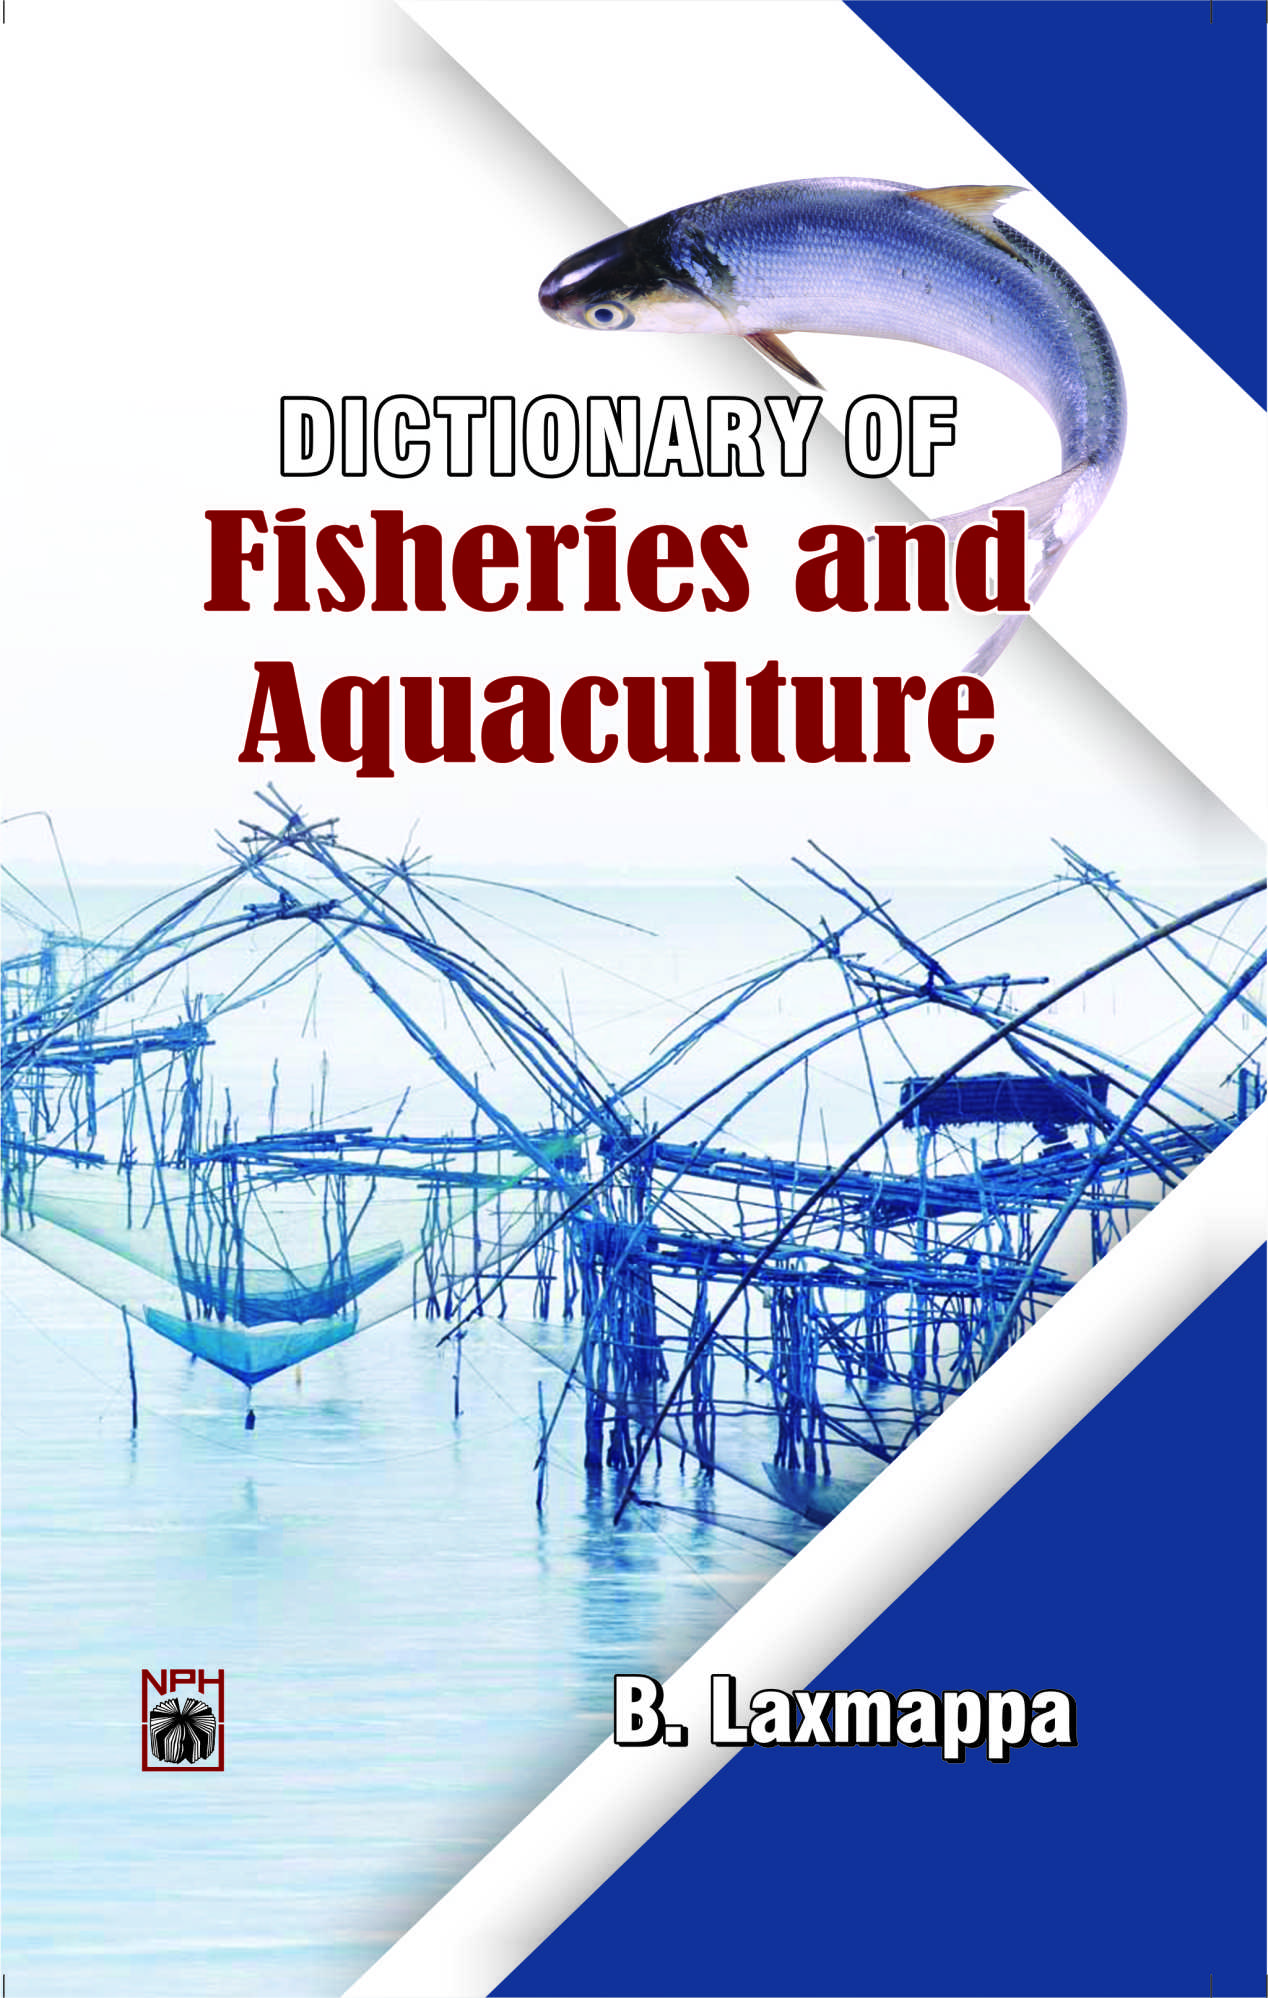 Dictionary of Fisheries & Aquaculture